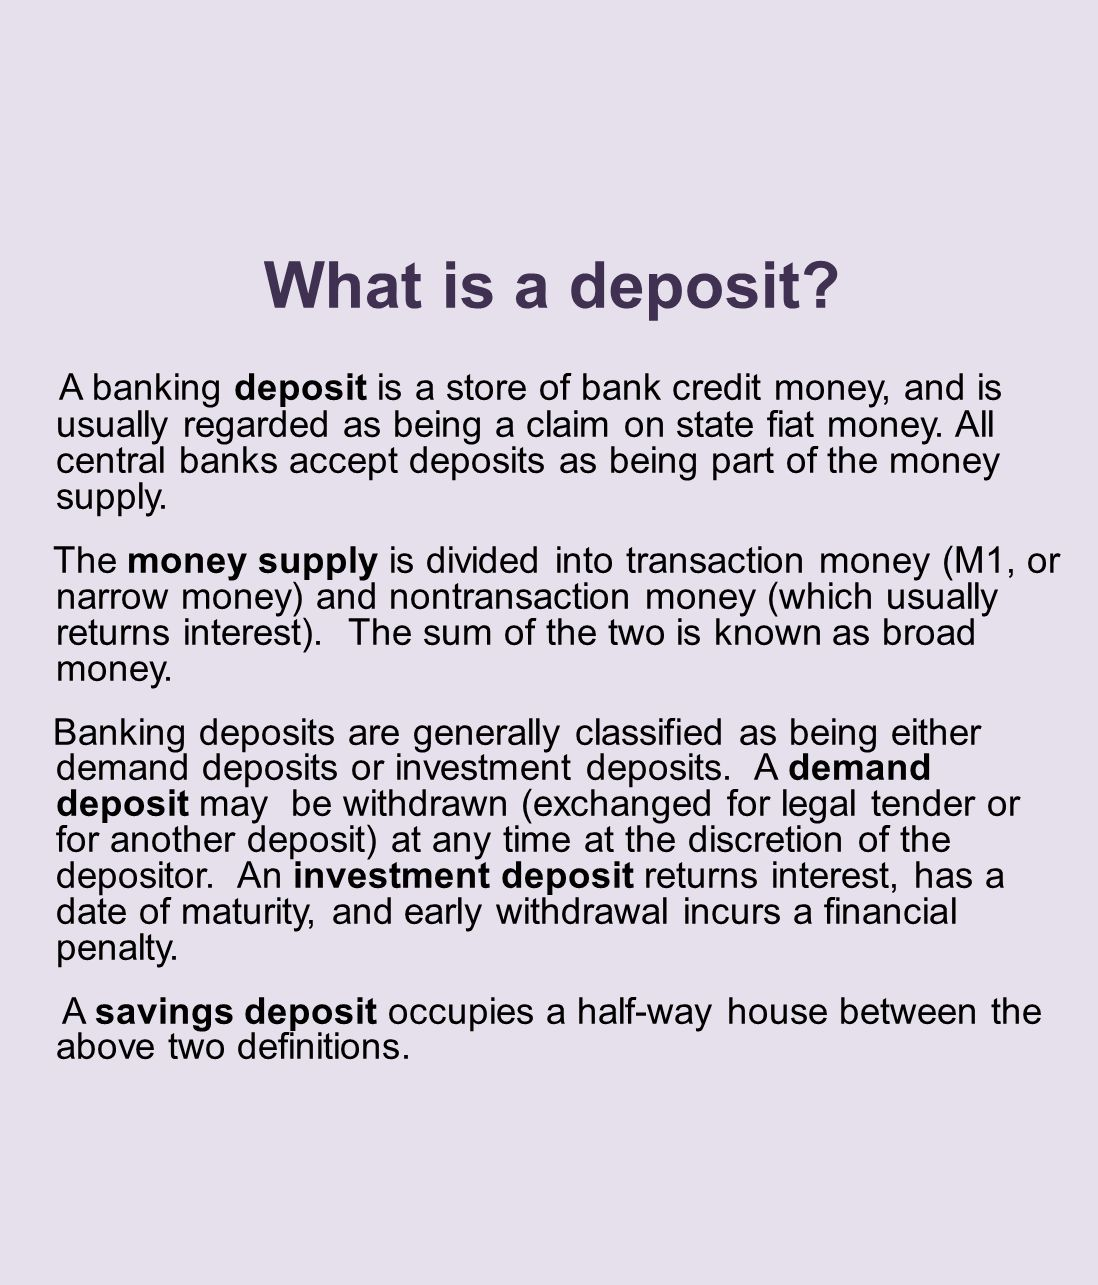 What is a deposit.